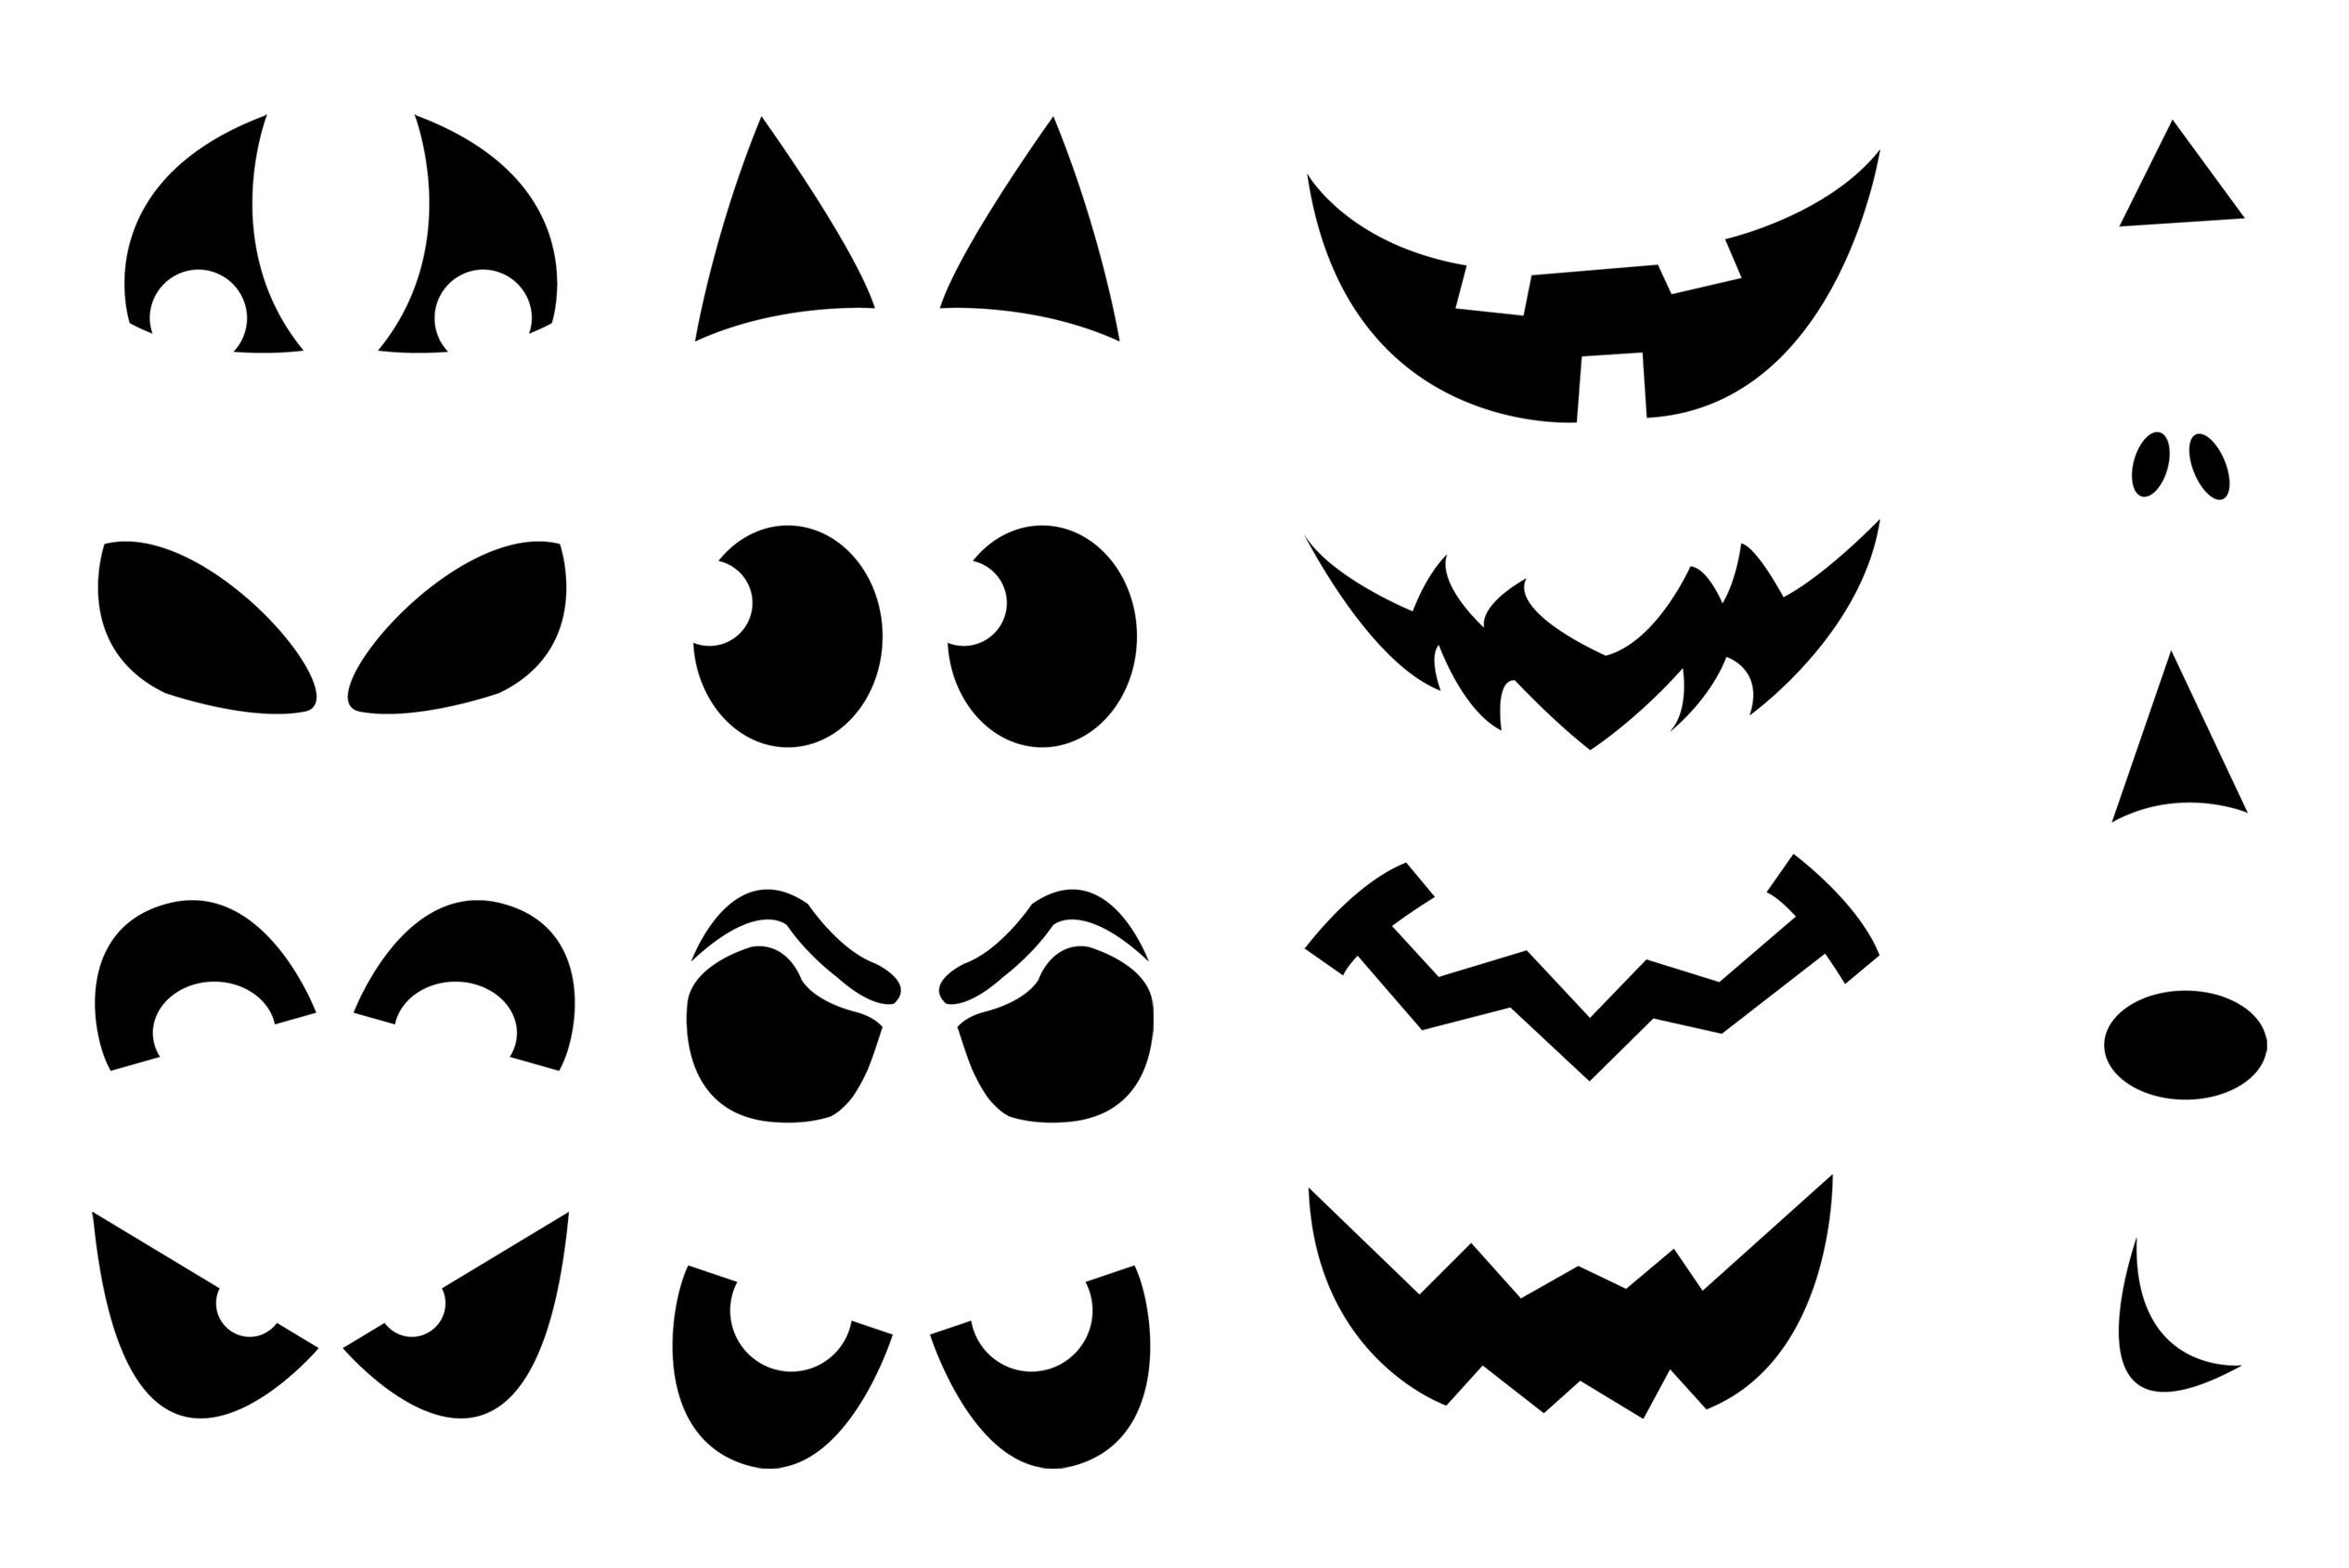 Pleasant Pumpkin Faces On Scary Carving Cool Shapes For